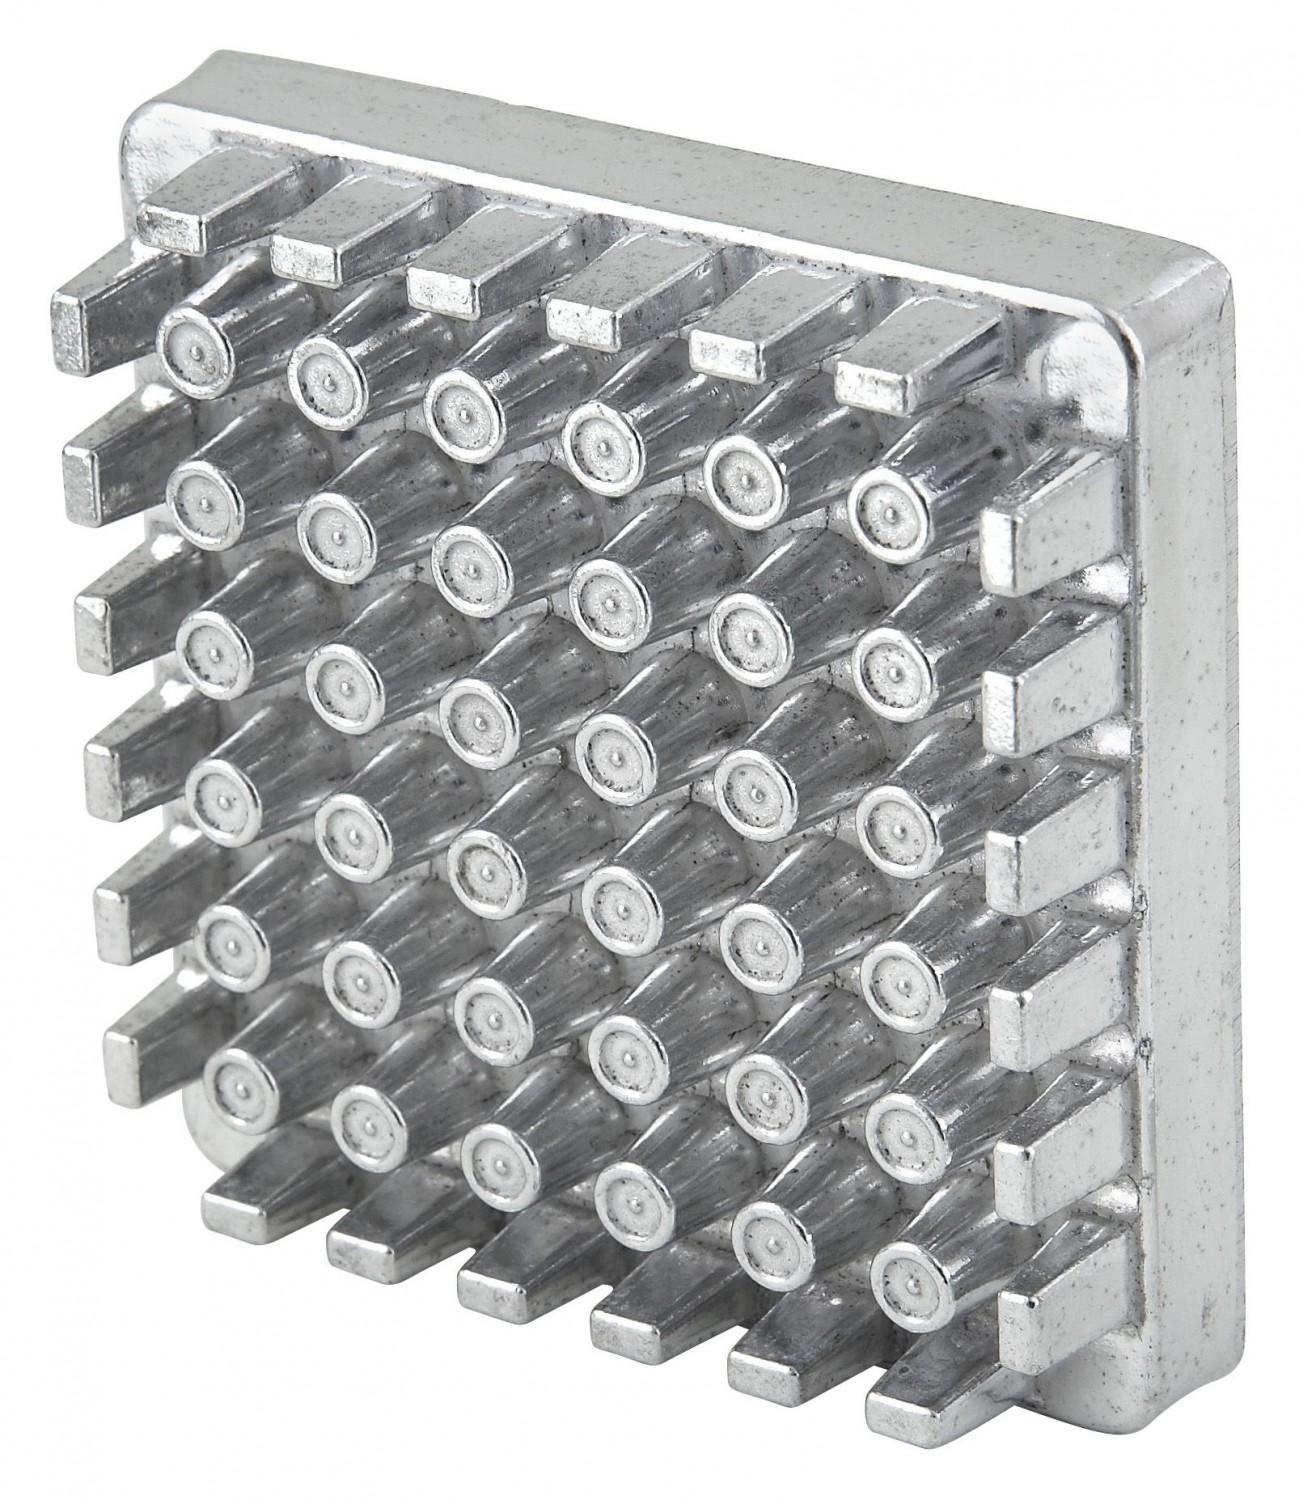 Winco FFC-375K Pusher Block of FFC-375